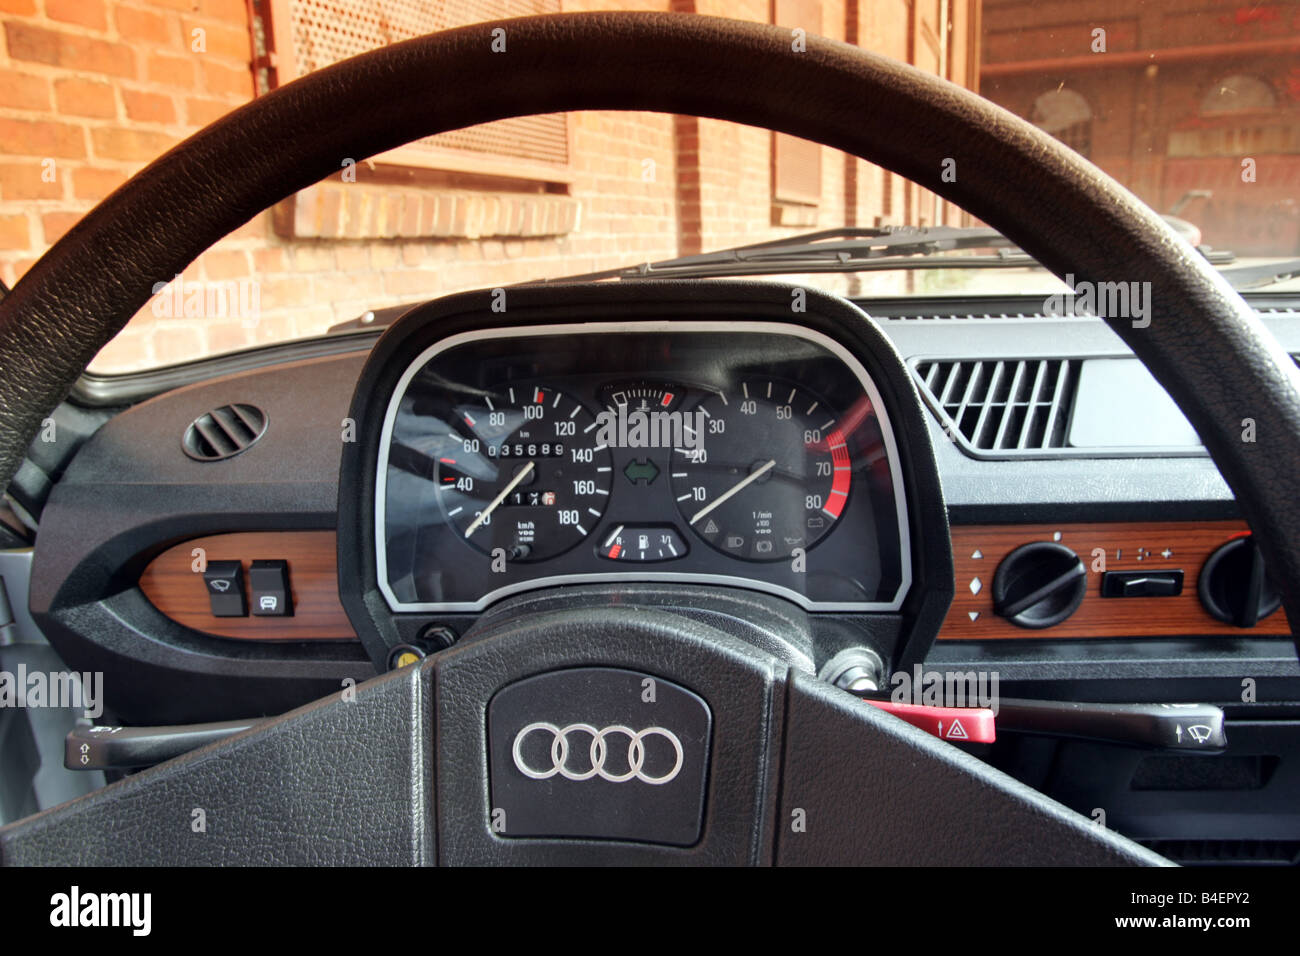 car audi 50 model year 1974 1978 silver old car 1970s stock photo royalty free image. Black Bedroom Furniture Sets. Home Design Ideas